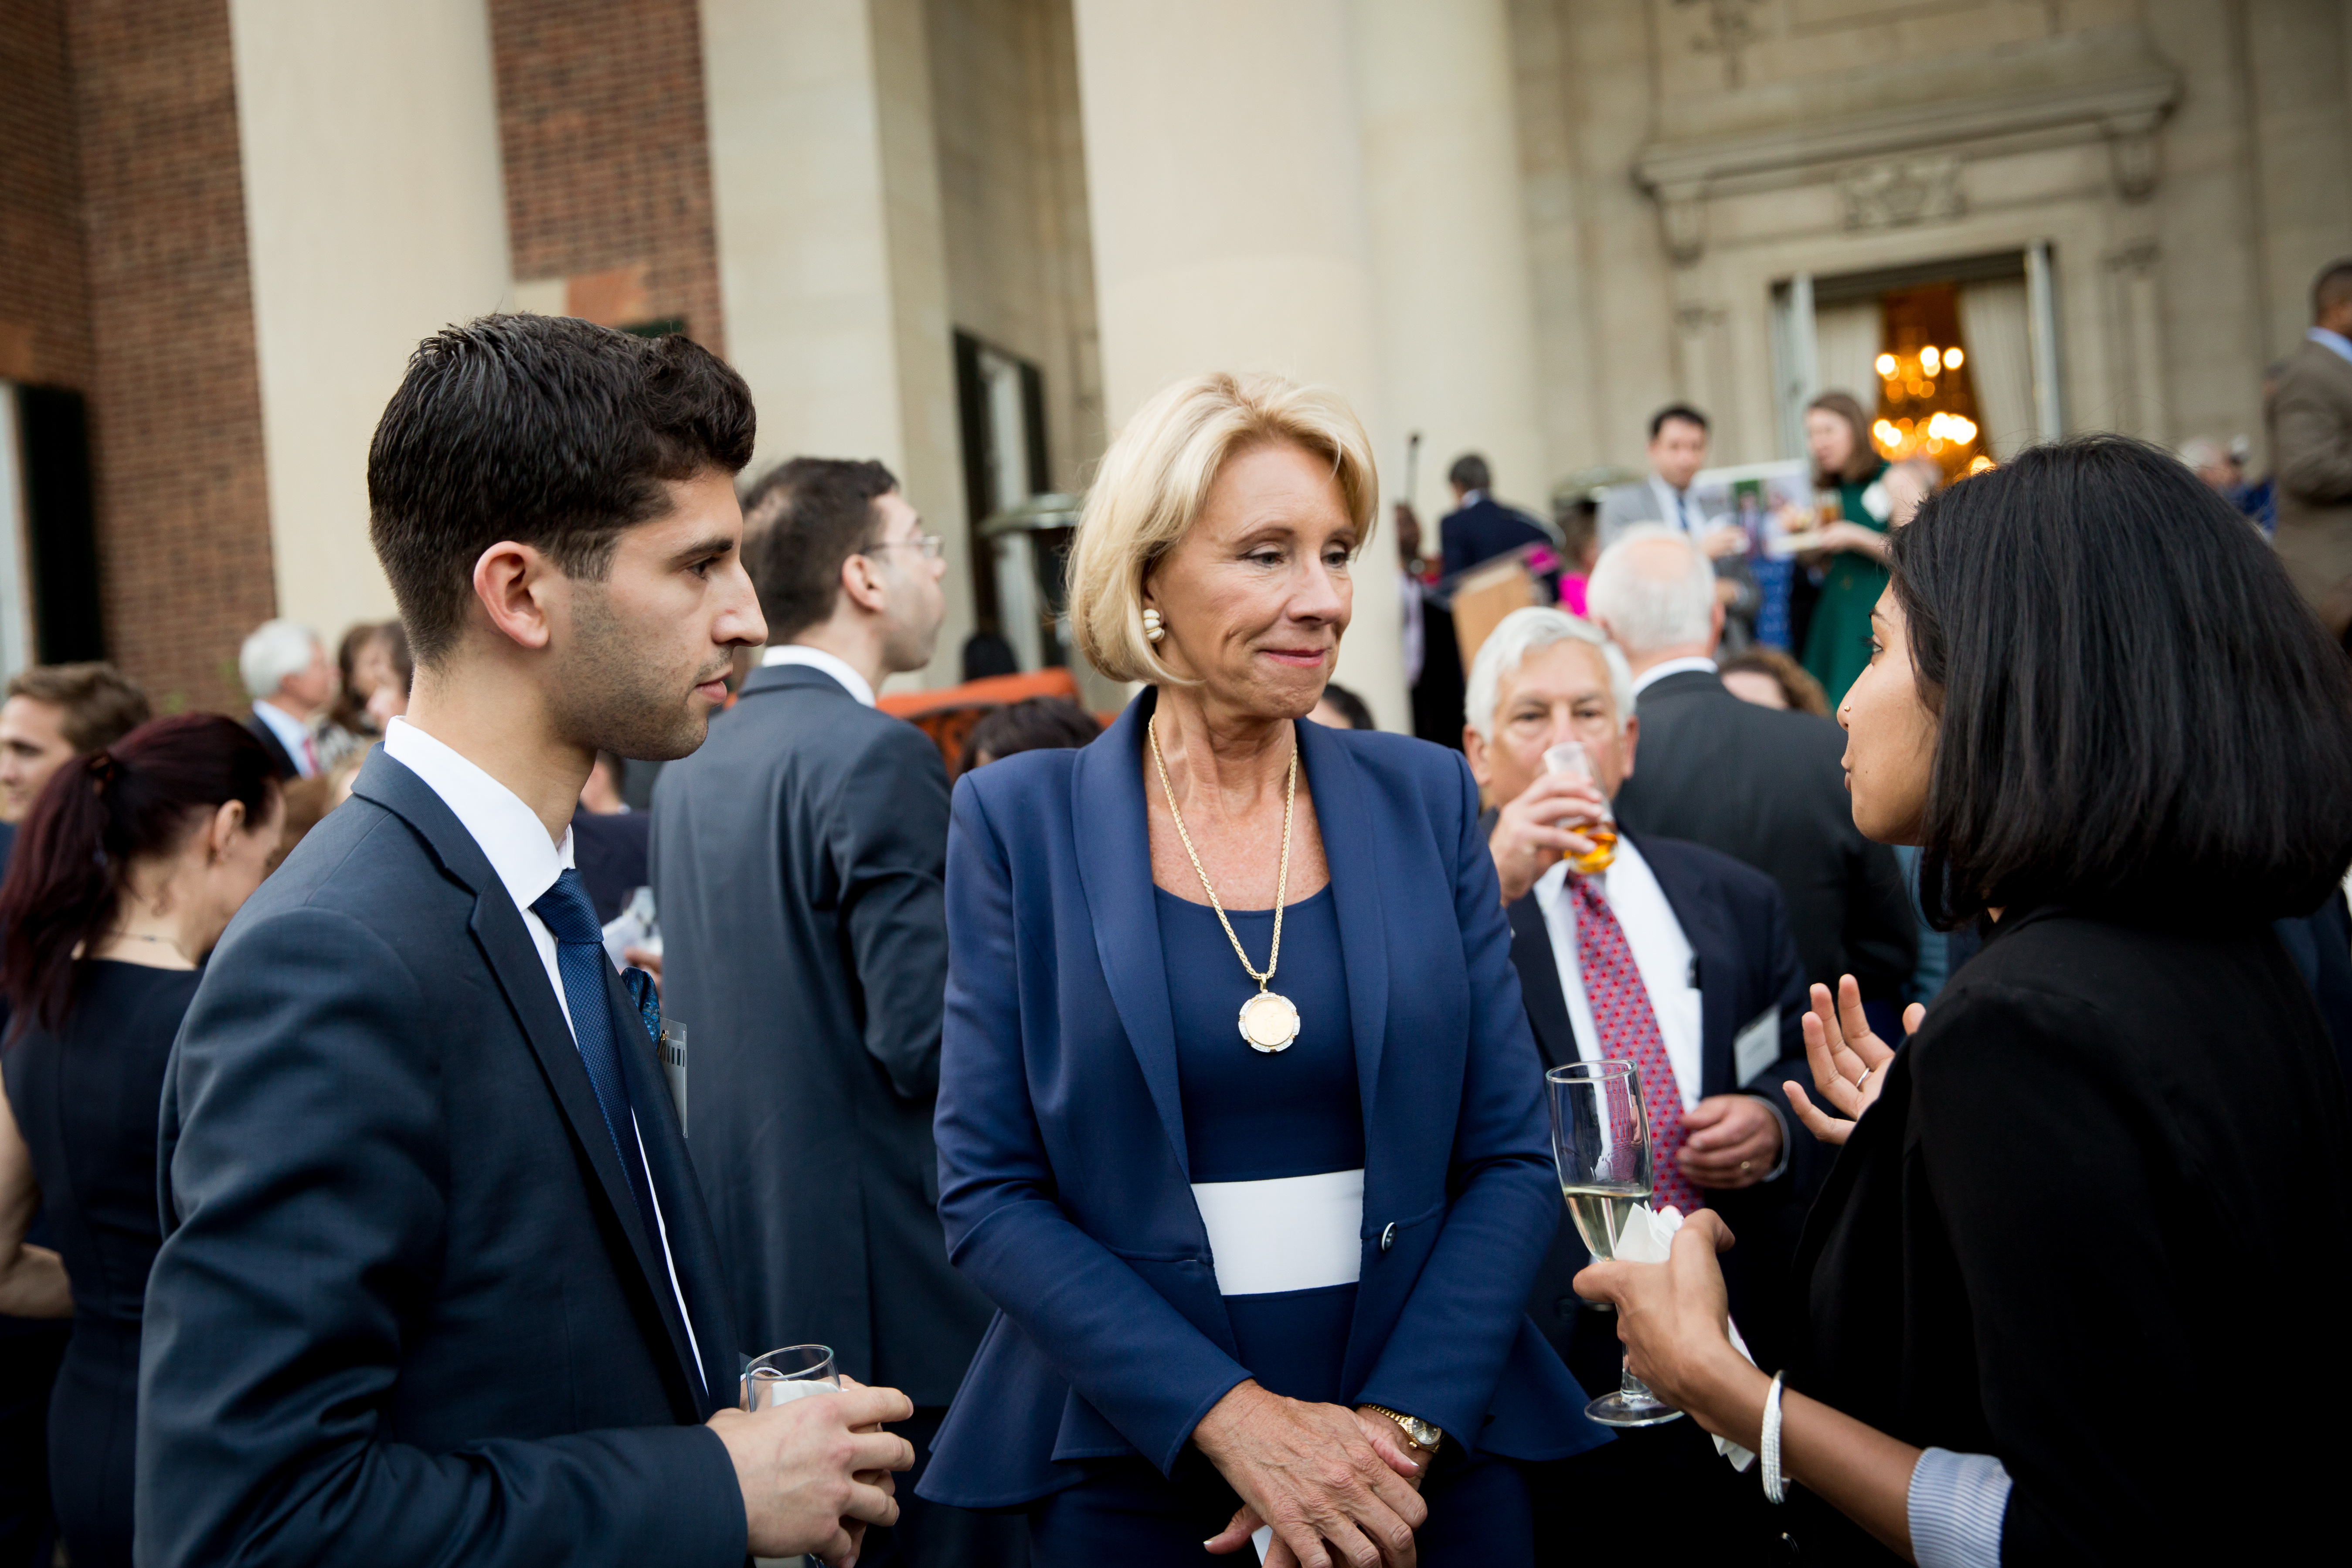 Fulbrighters spoke with US Secretary of Education Betsy DeVos